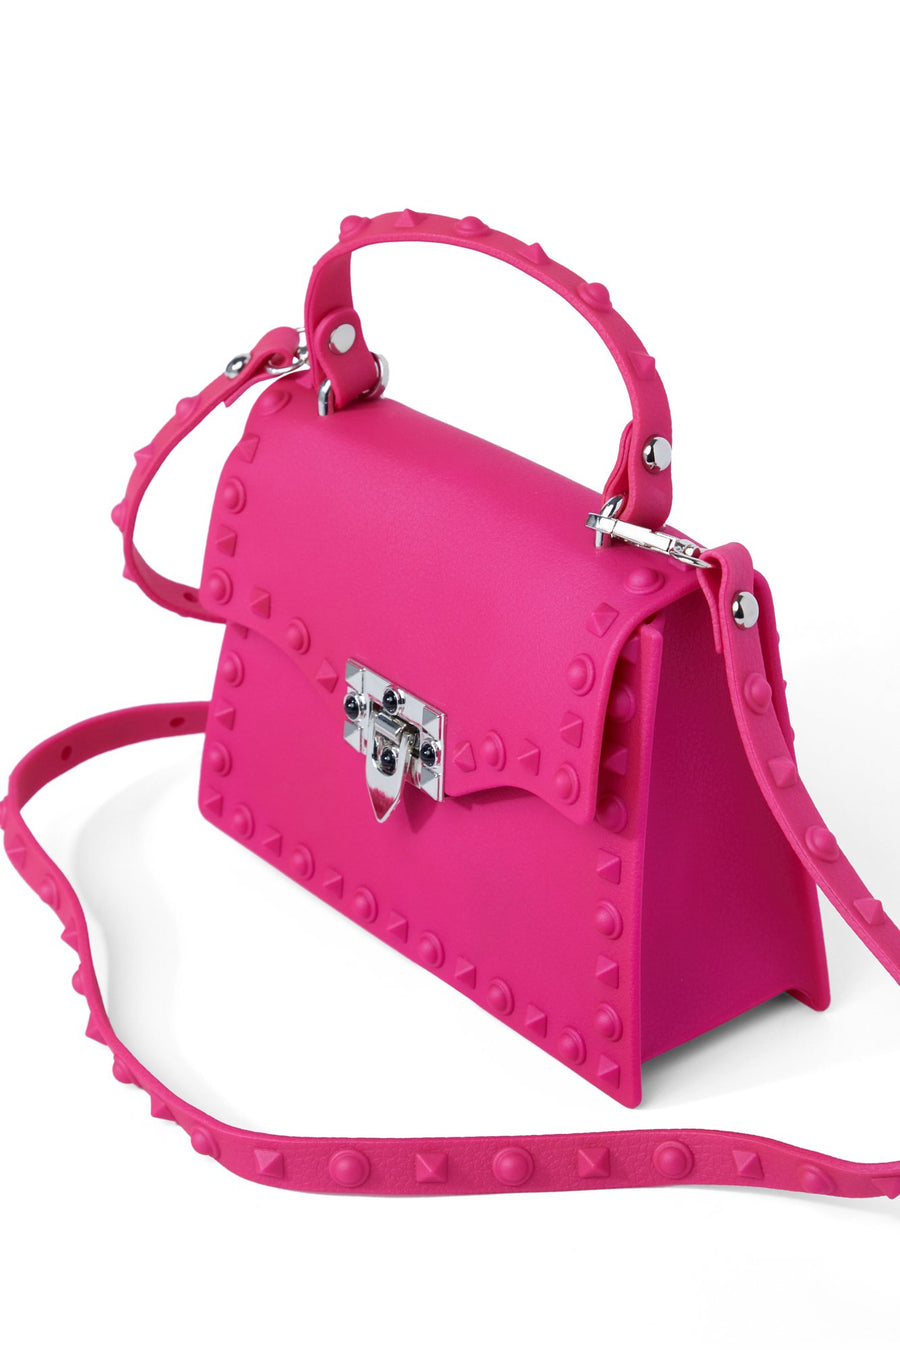 Slow And Studdy Mini Bag - Fuschia